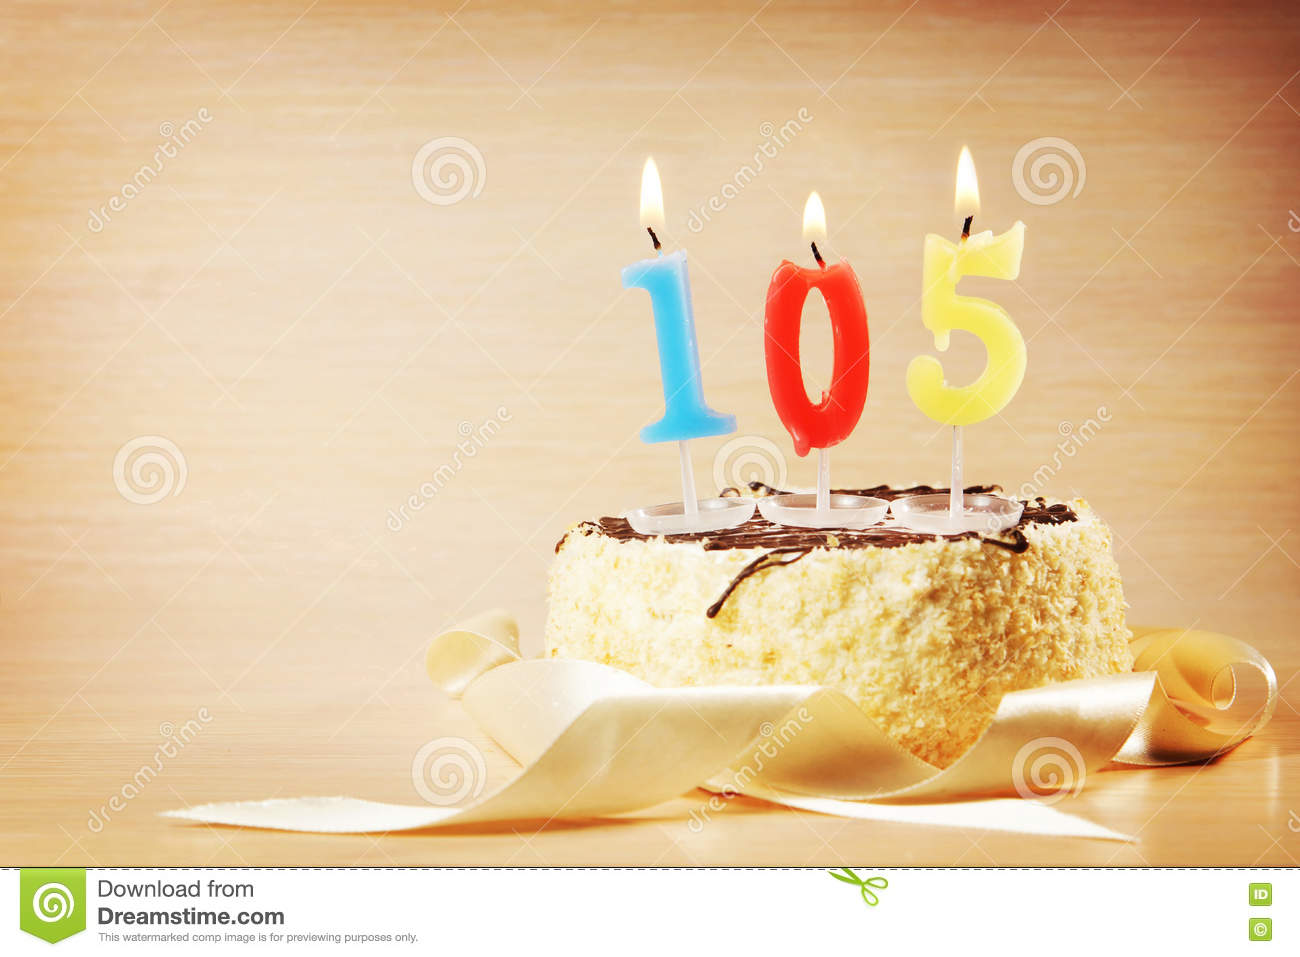 Birthday Cake With Burning Candle As A Number One Hundred And Five